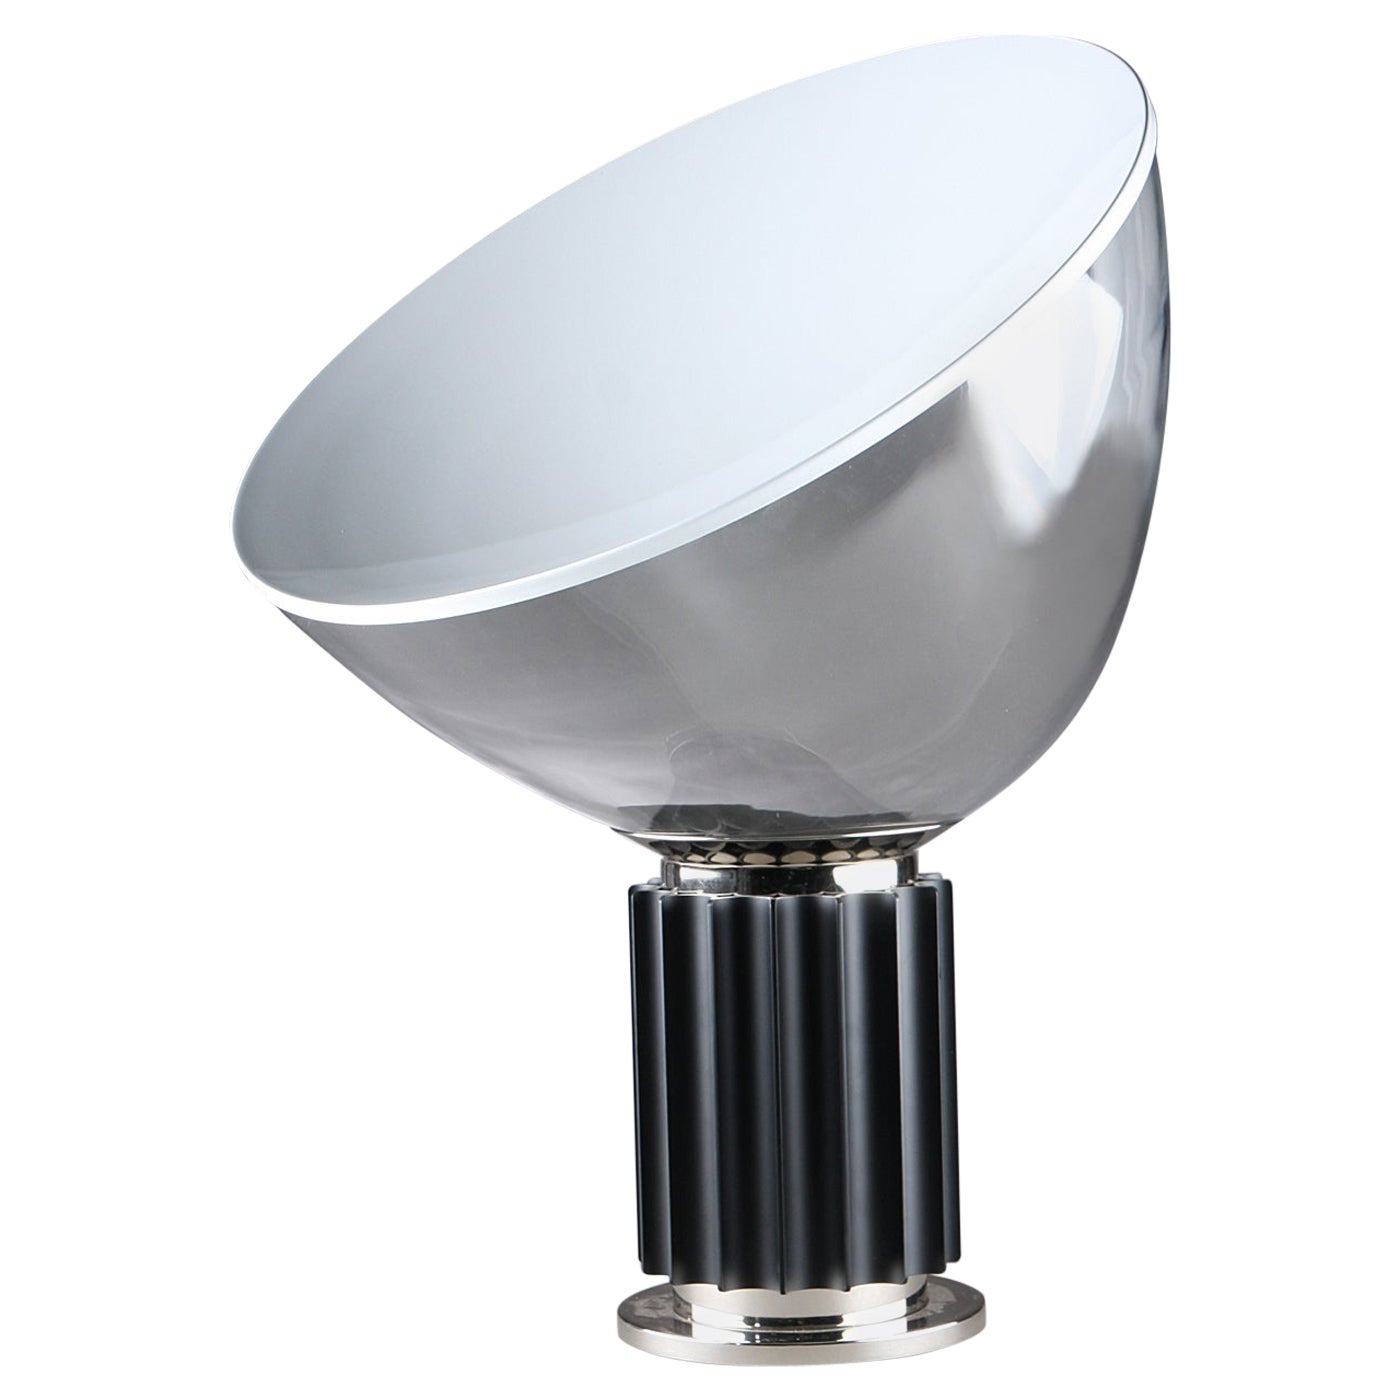 Taccia Table Lamp by Achille and Pier Giacomo Castiglioni for Flos